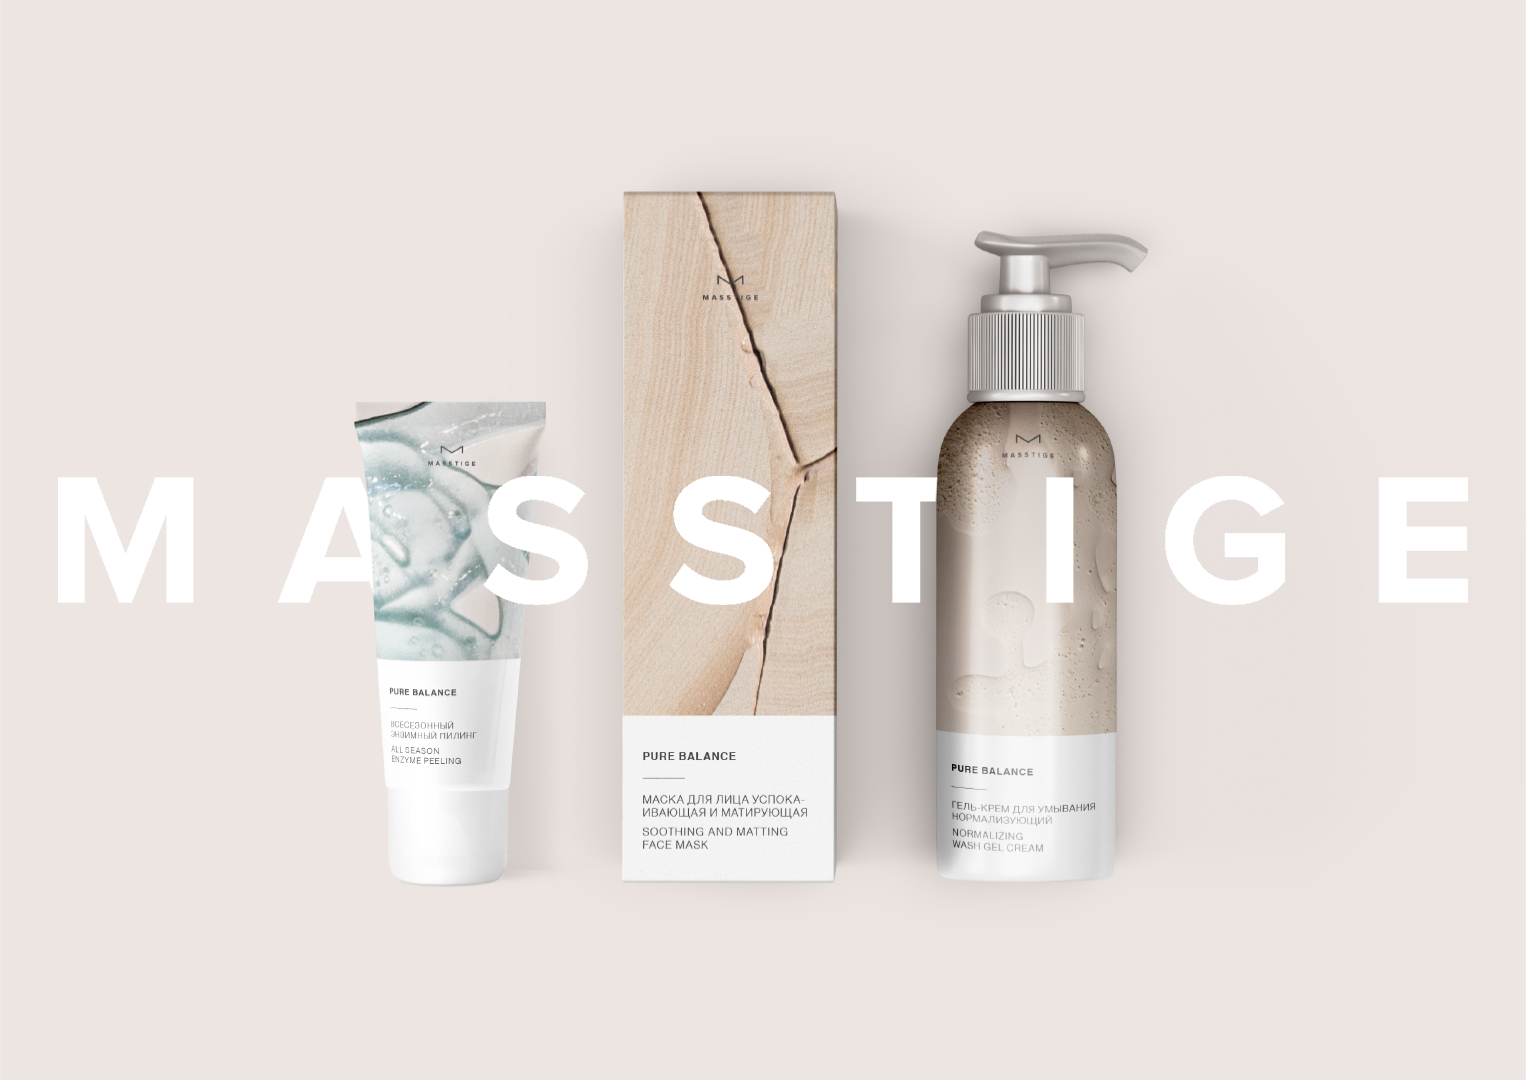 Craft Packaging Non Pubished Concept for Masstige Pure Balance Cosmetics by Moloko Creative